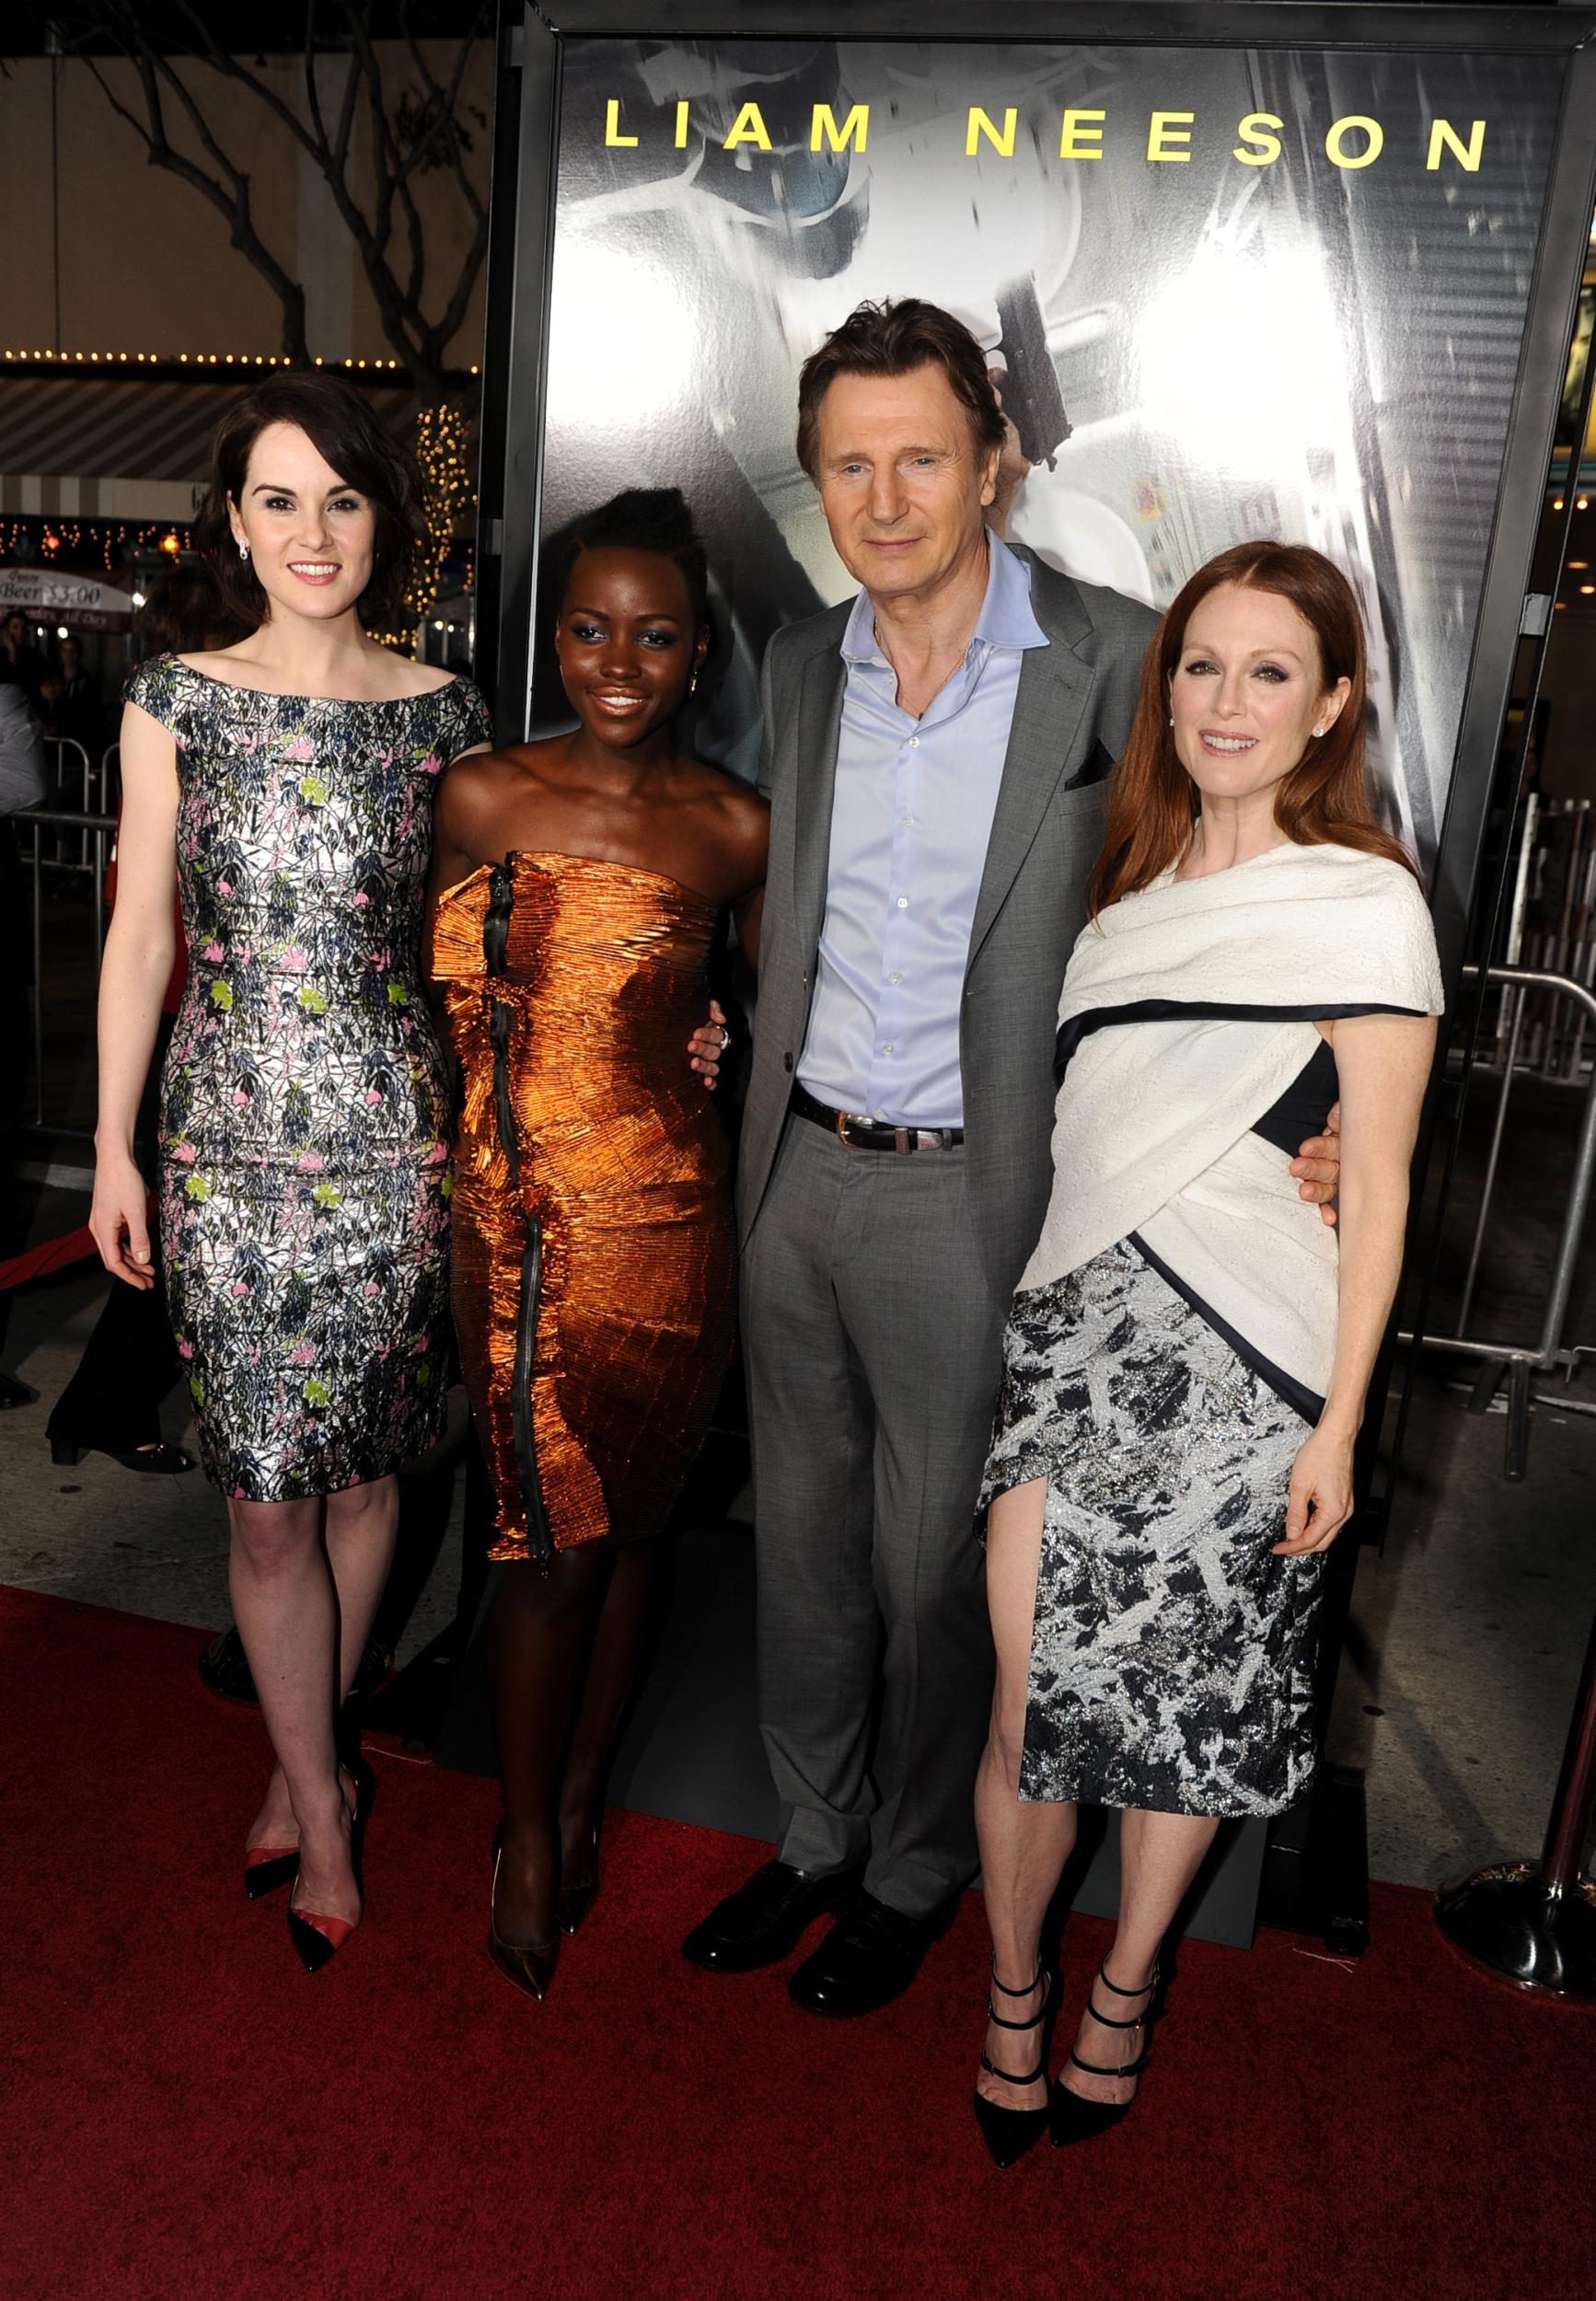 Liam Neeson interview: Rape, race and how I learnt revenge doesn't